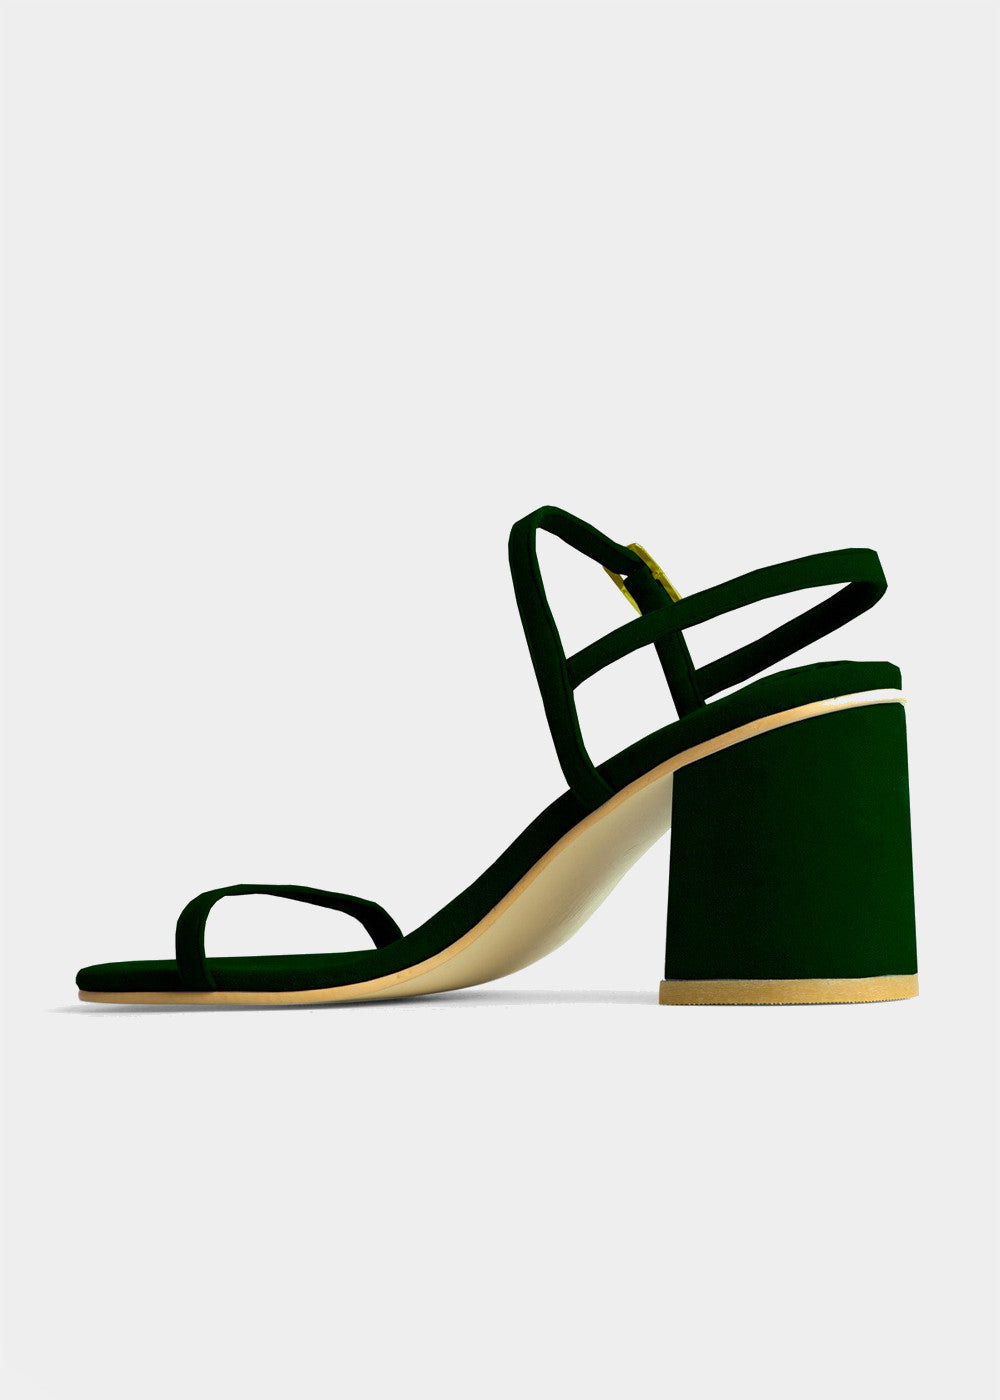 RAFA Simple Sandal in Chlor — Shop sustainable fashion and slow fashion at New Classics Studios